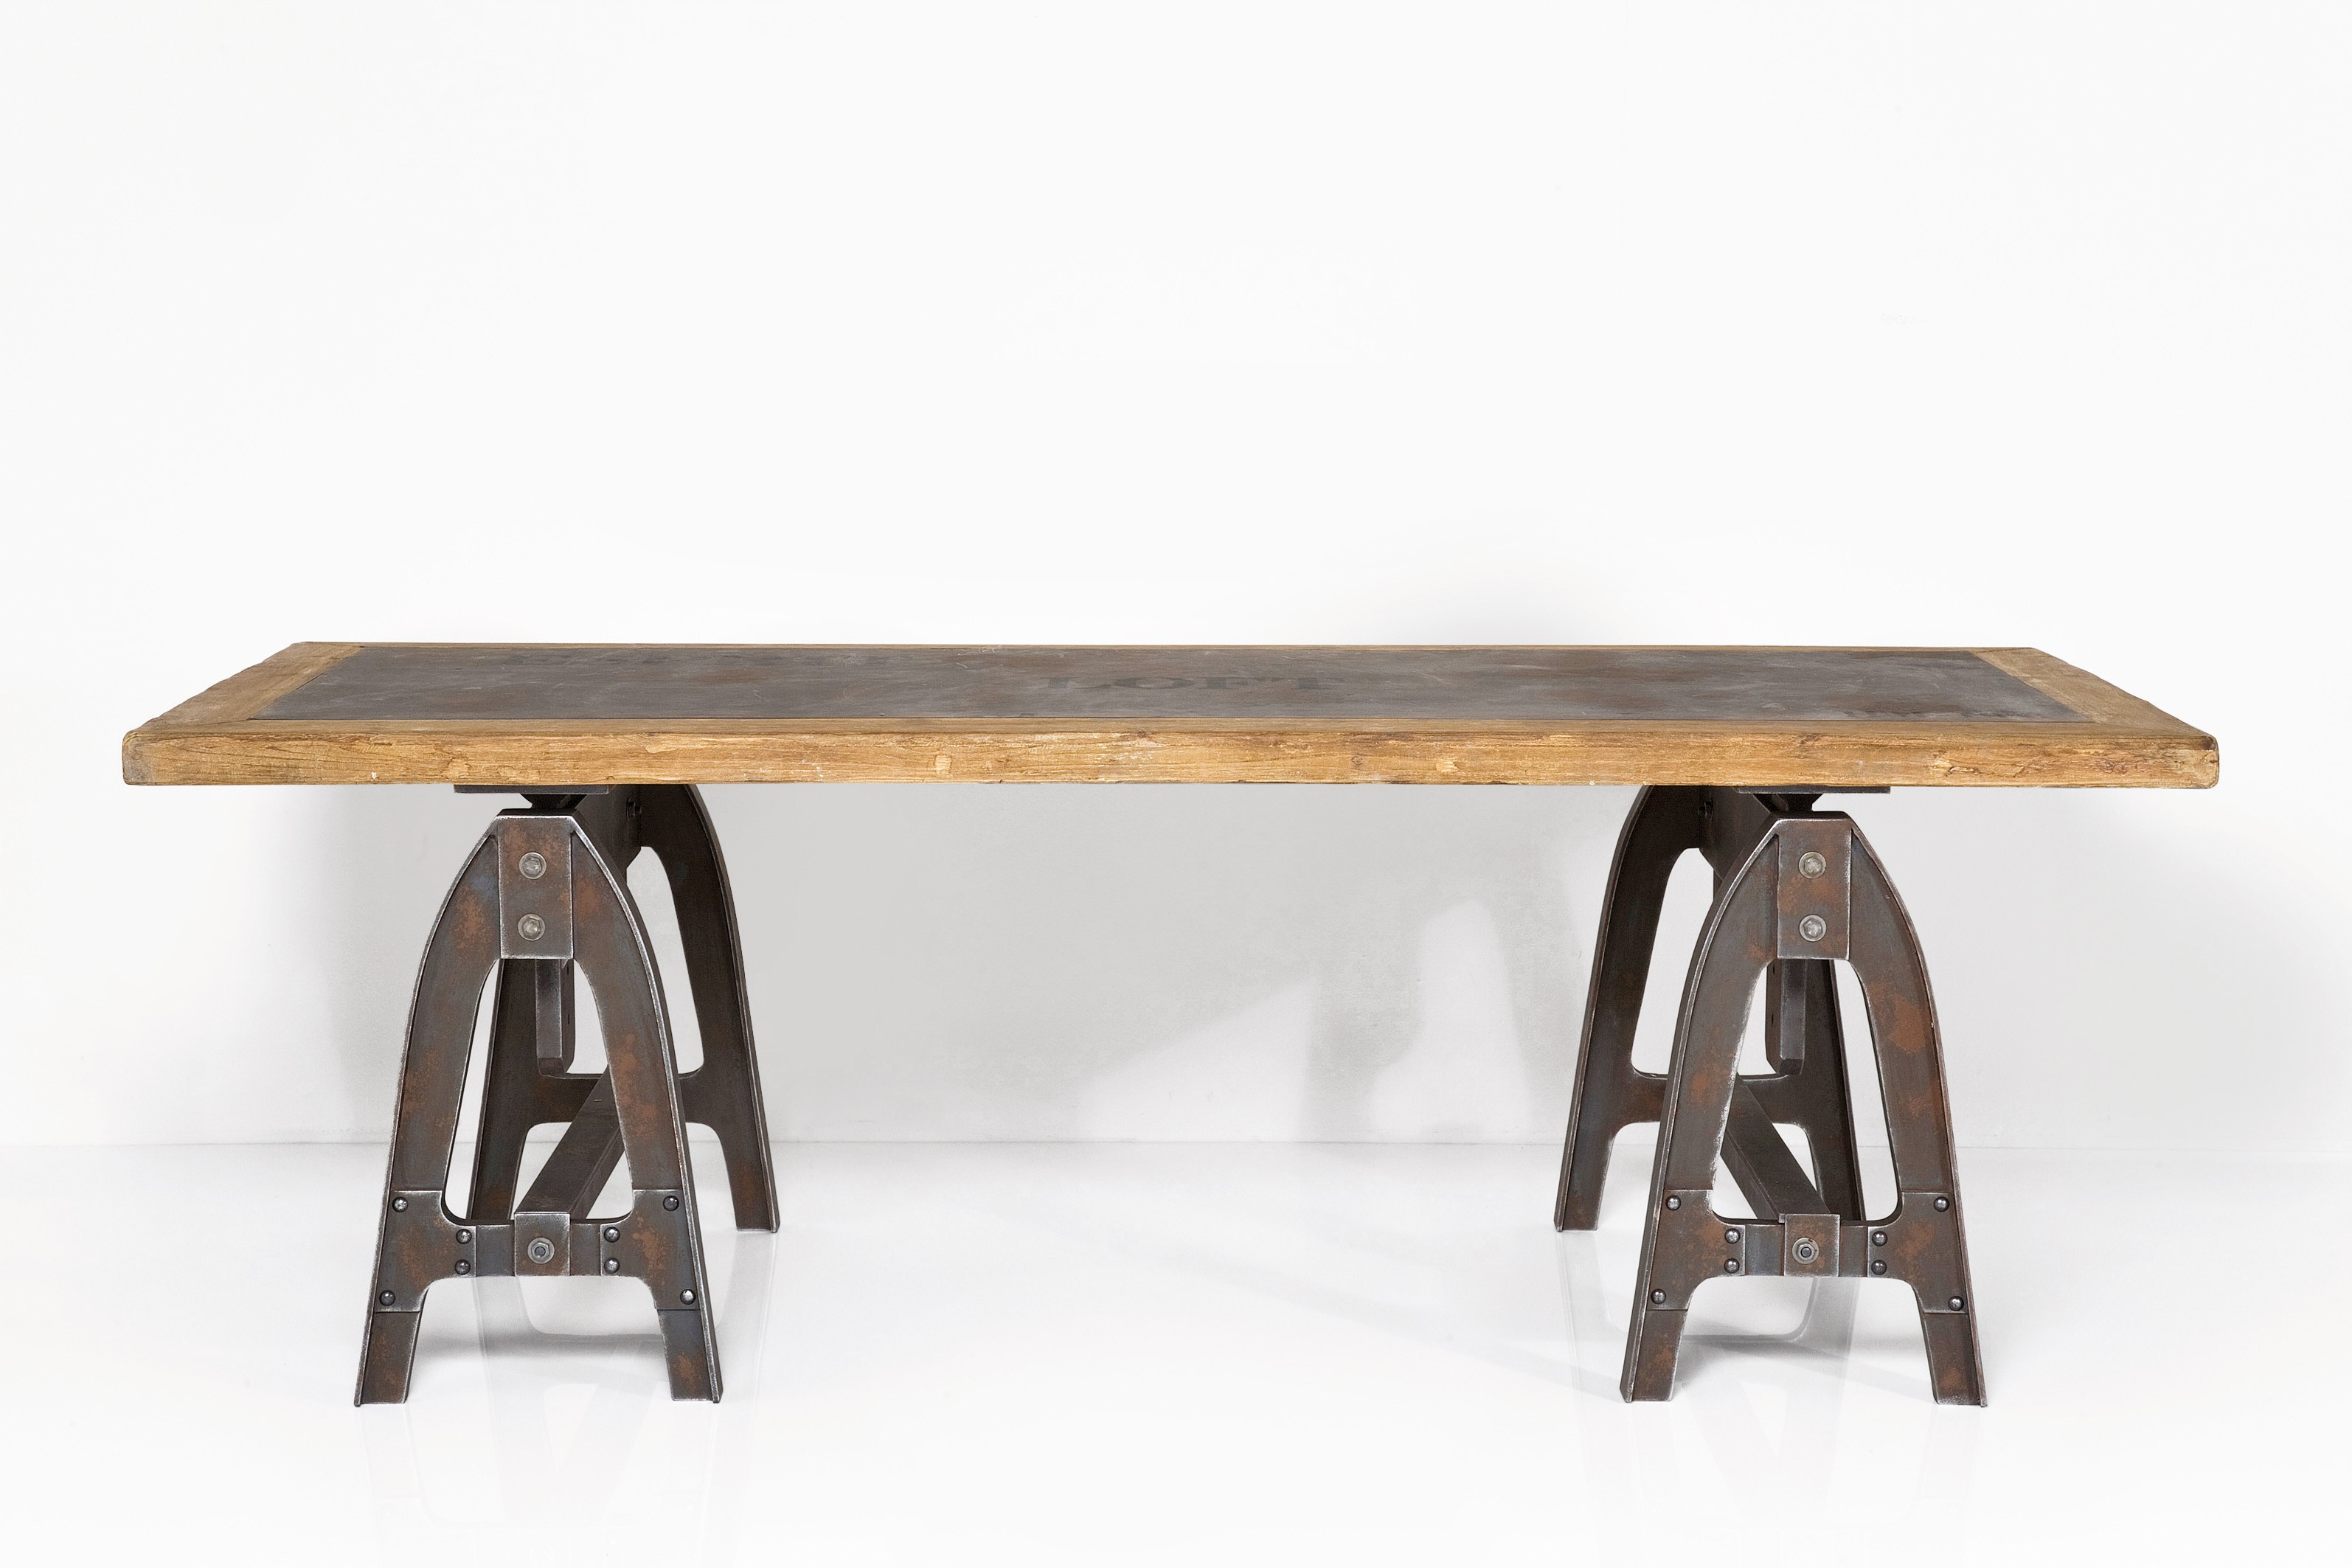 Rustic wood designer table 1700x900 with iron frame legs for Wood table iron legs